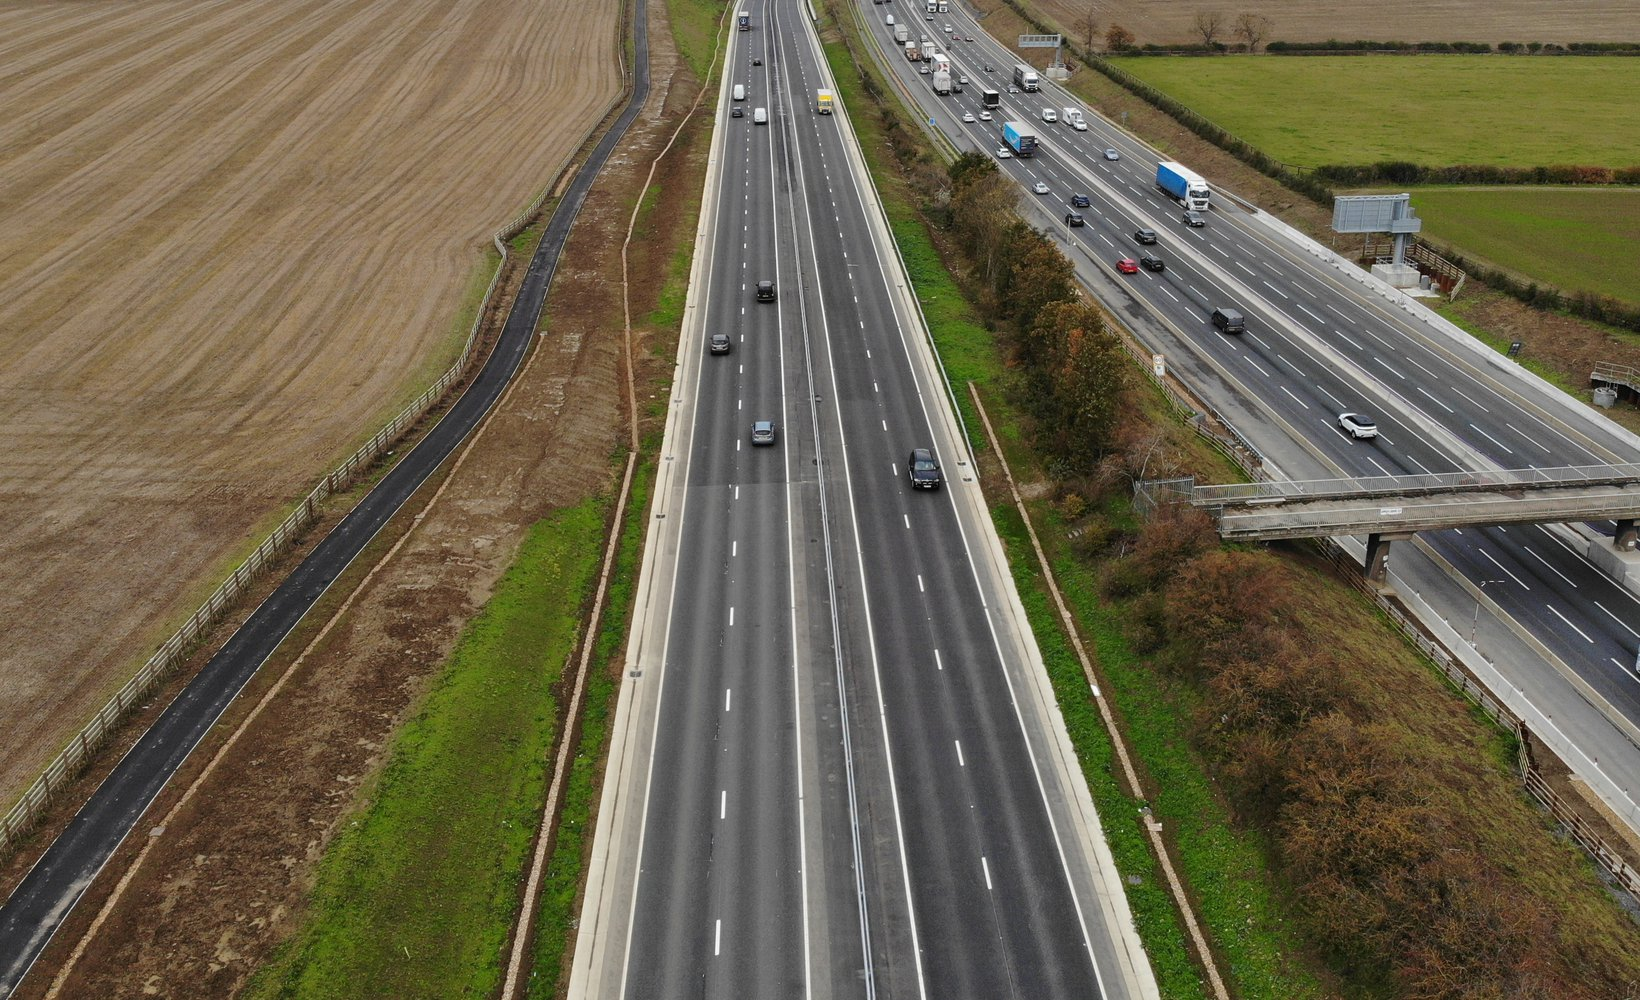 An aerial view of the A421 dualling project